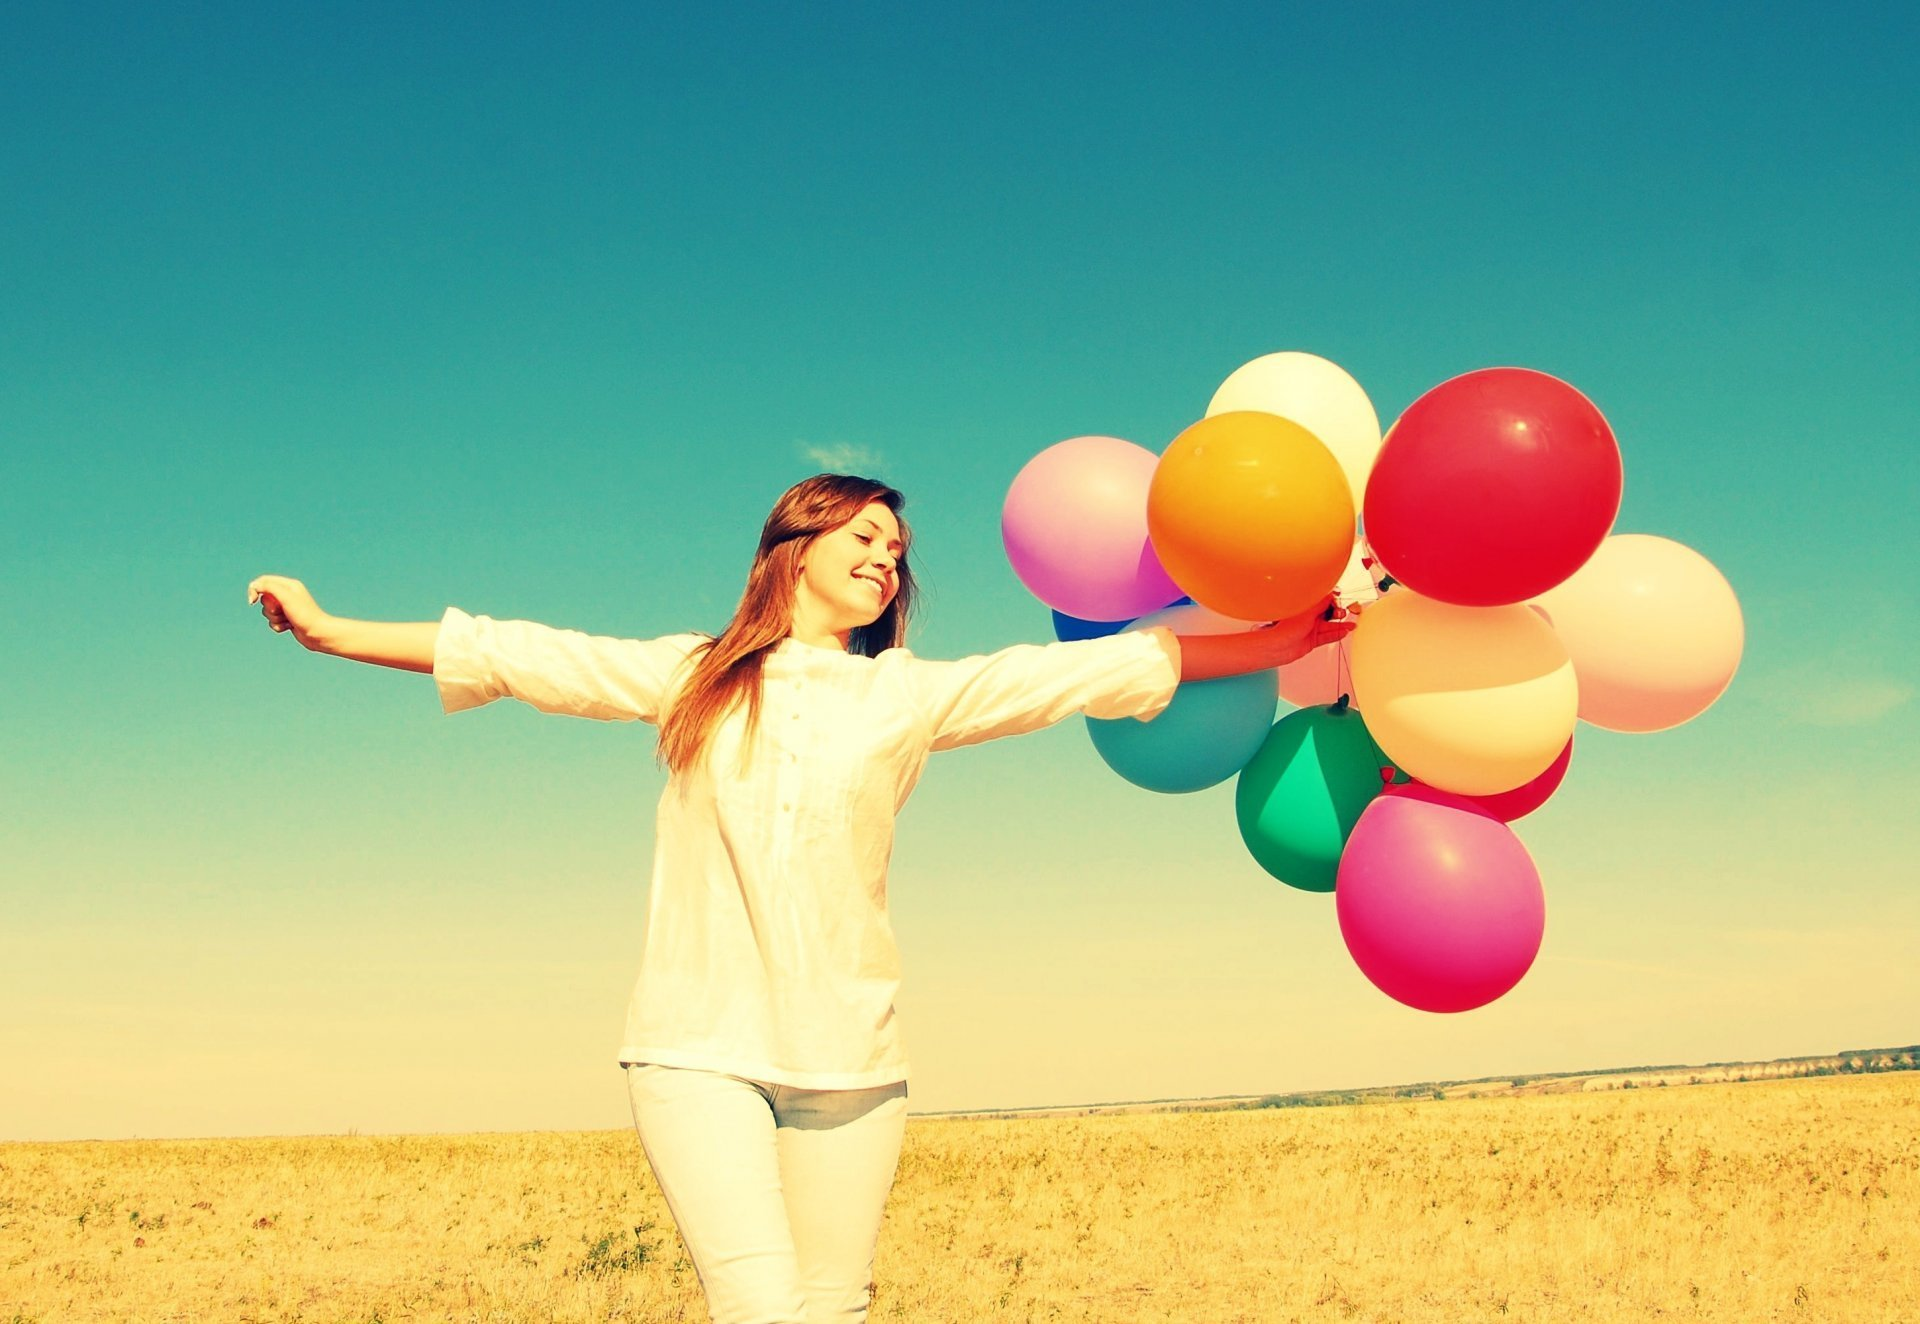 Free Download Mood Girl Hands Bulbs Balloons Color Colored Hands Freedom 1920x1324 For Your Desktop Mobile Tablet Explore 86 Happiness Hd Wallpapers Happiness Hd Wallpapers Happiness Wallpapers Happiness Quotes Wallpaper